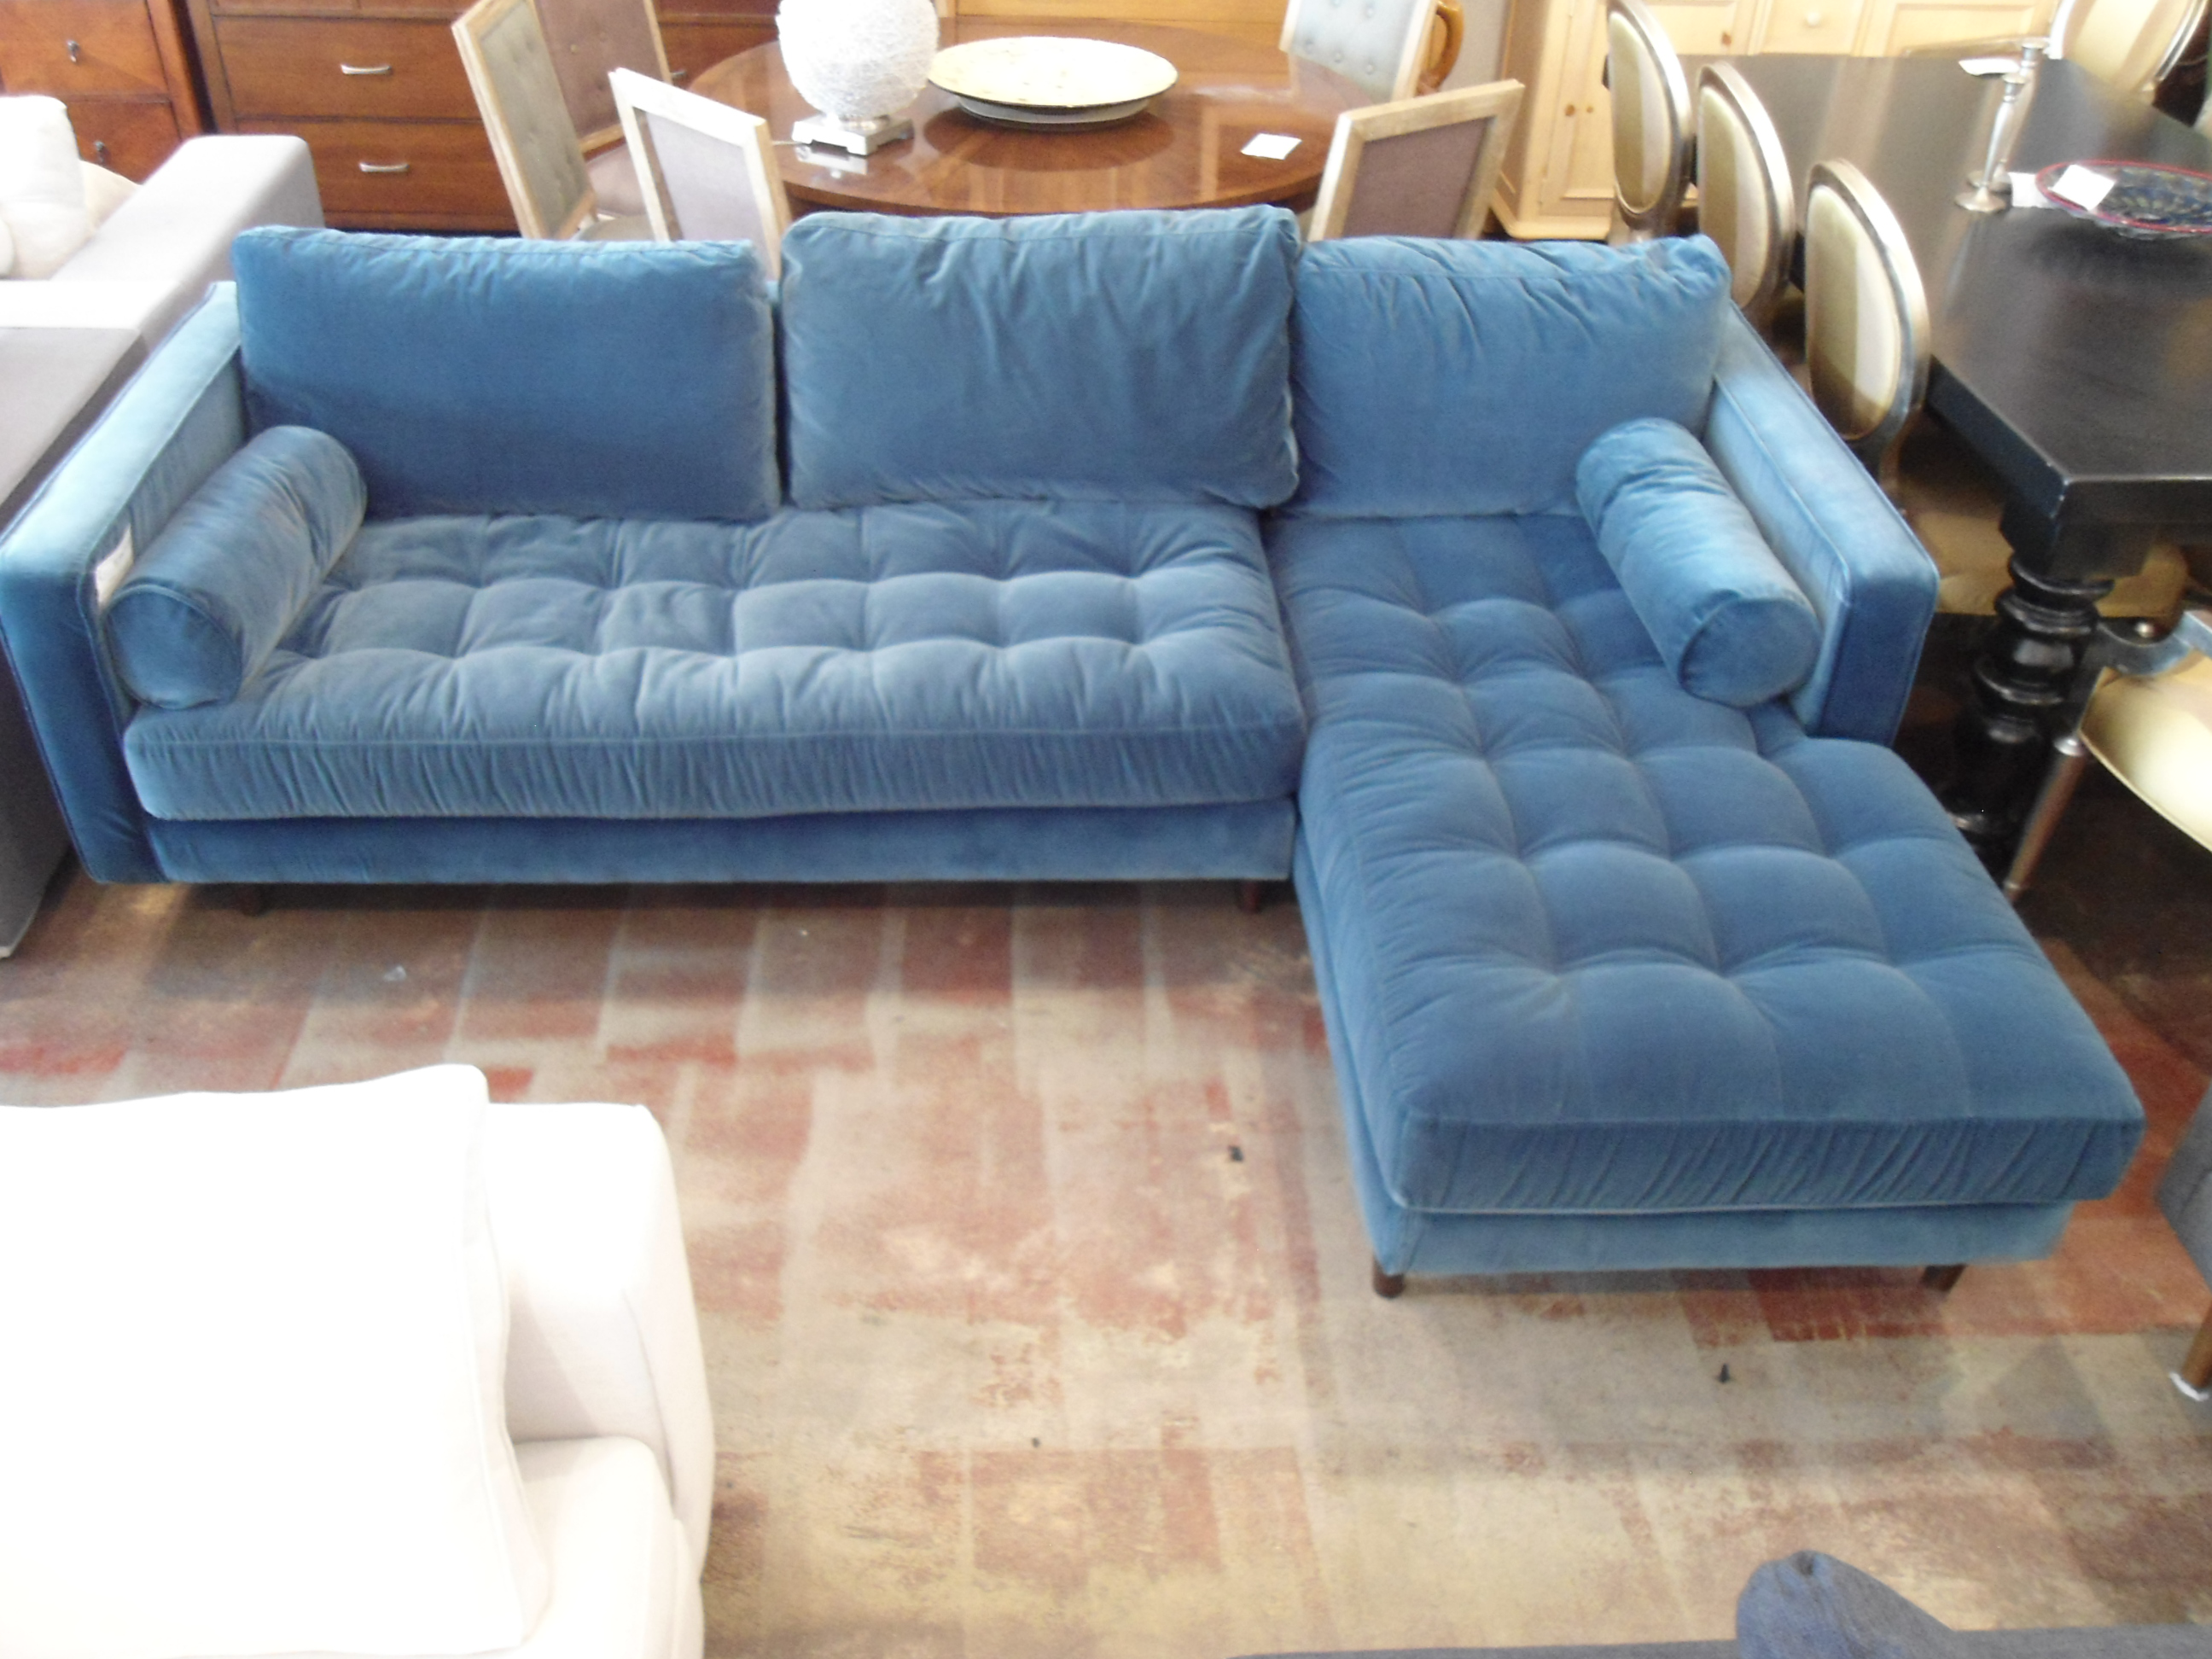 Pacific Blue Velvet Sectional Sofa - Image 2 of 5  sc 1 st  Chairish : velvet sectional - Sectionals, Sofas & Couches